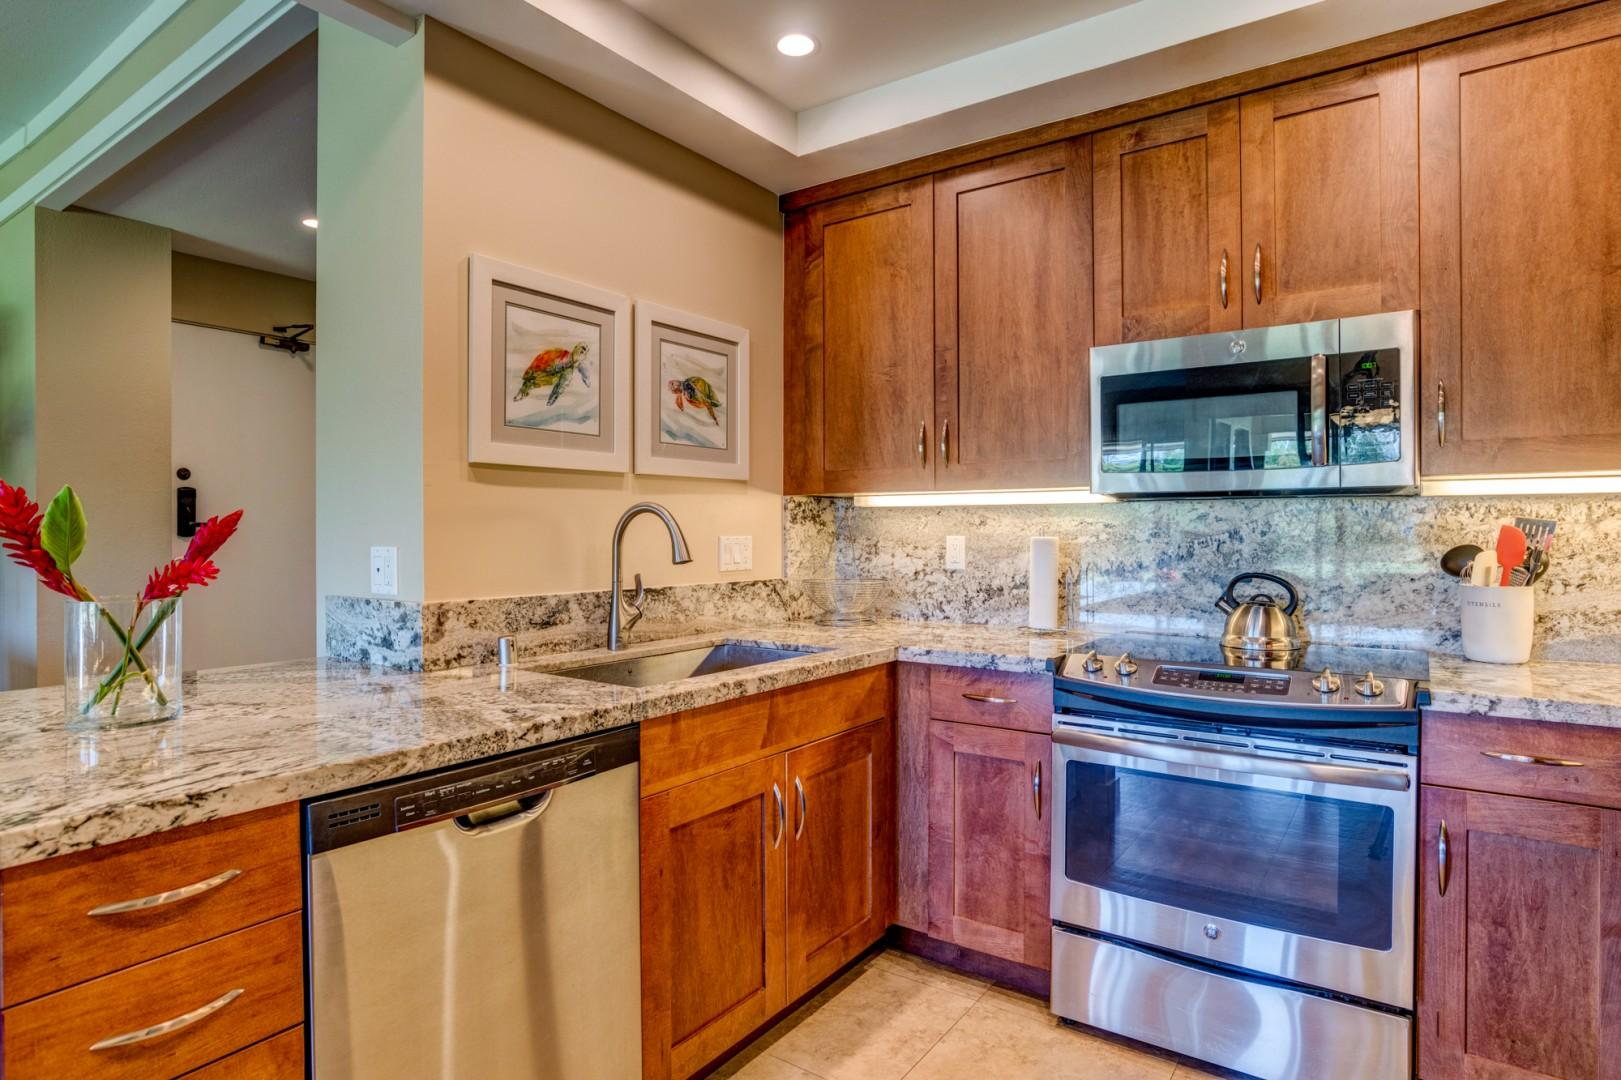 Recently remodeled with lots of counter space